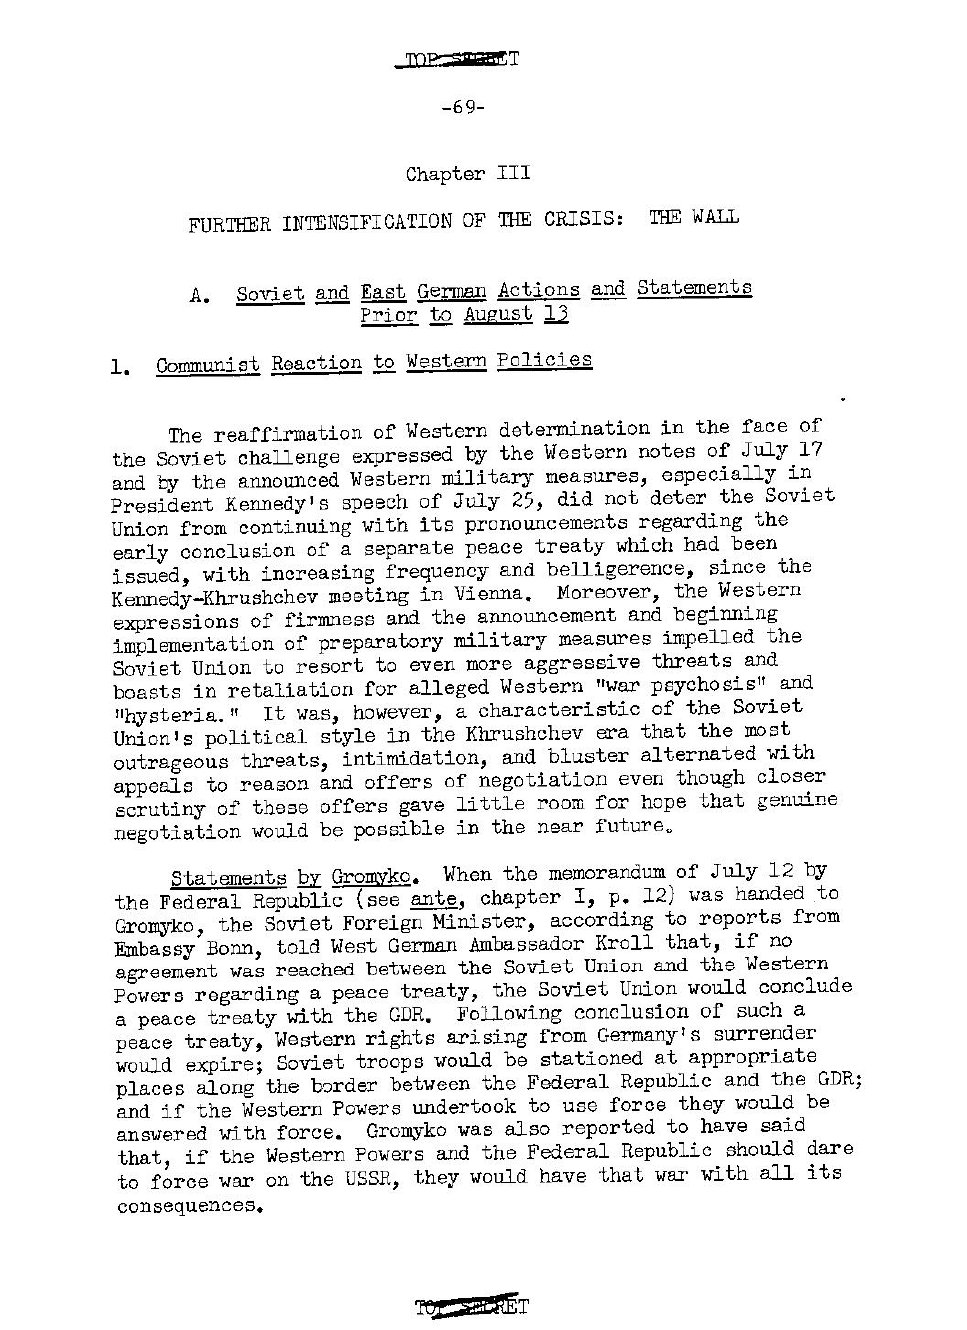 Berlin-Crisis-State-Department-Historical-Documents-Page-3